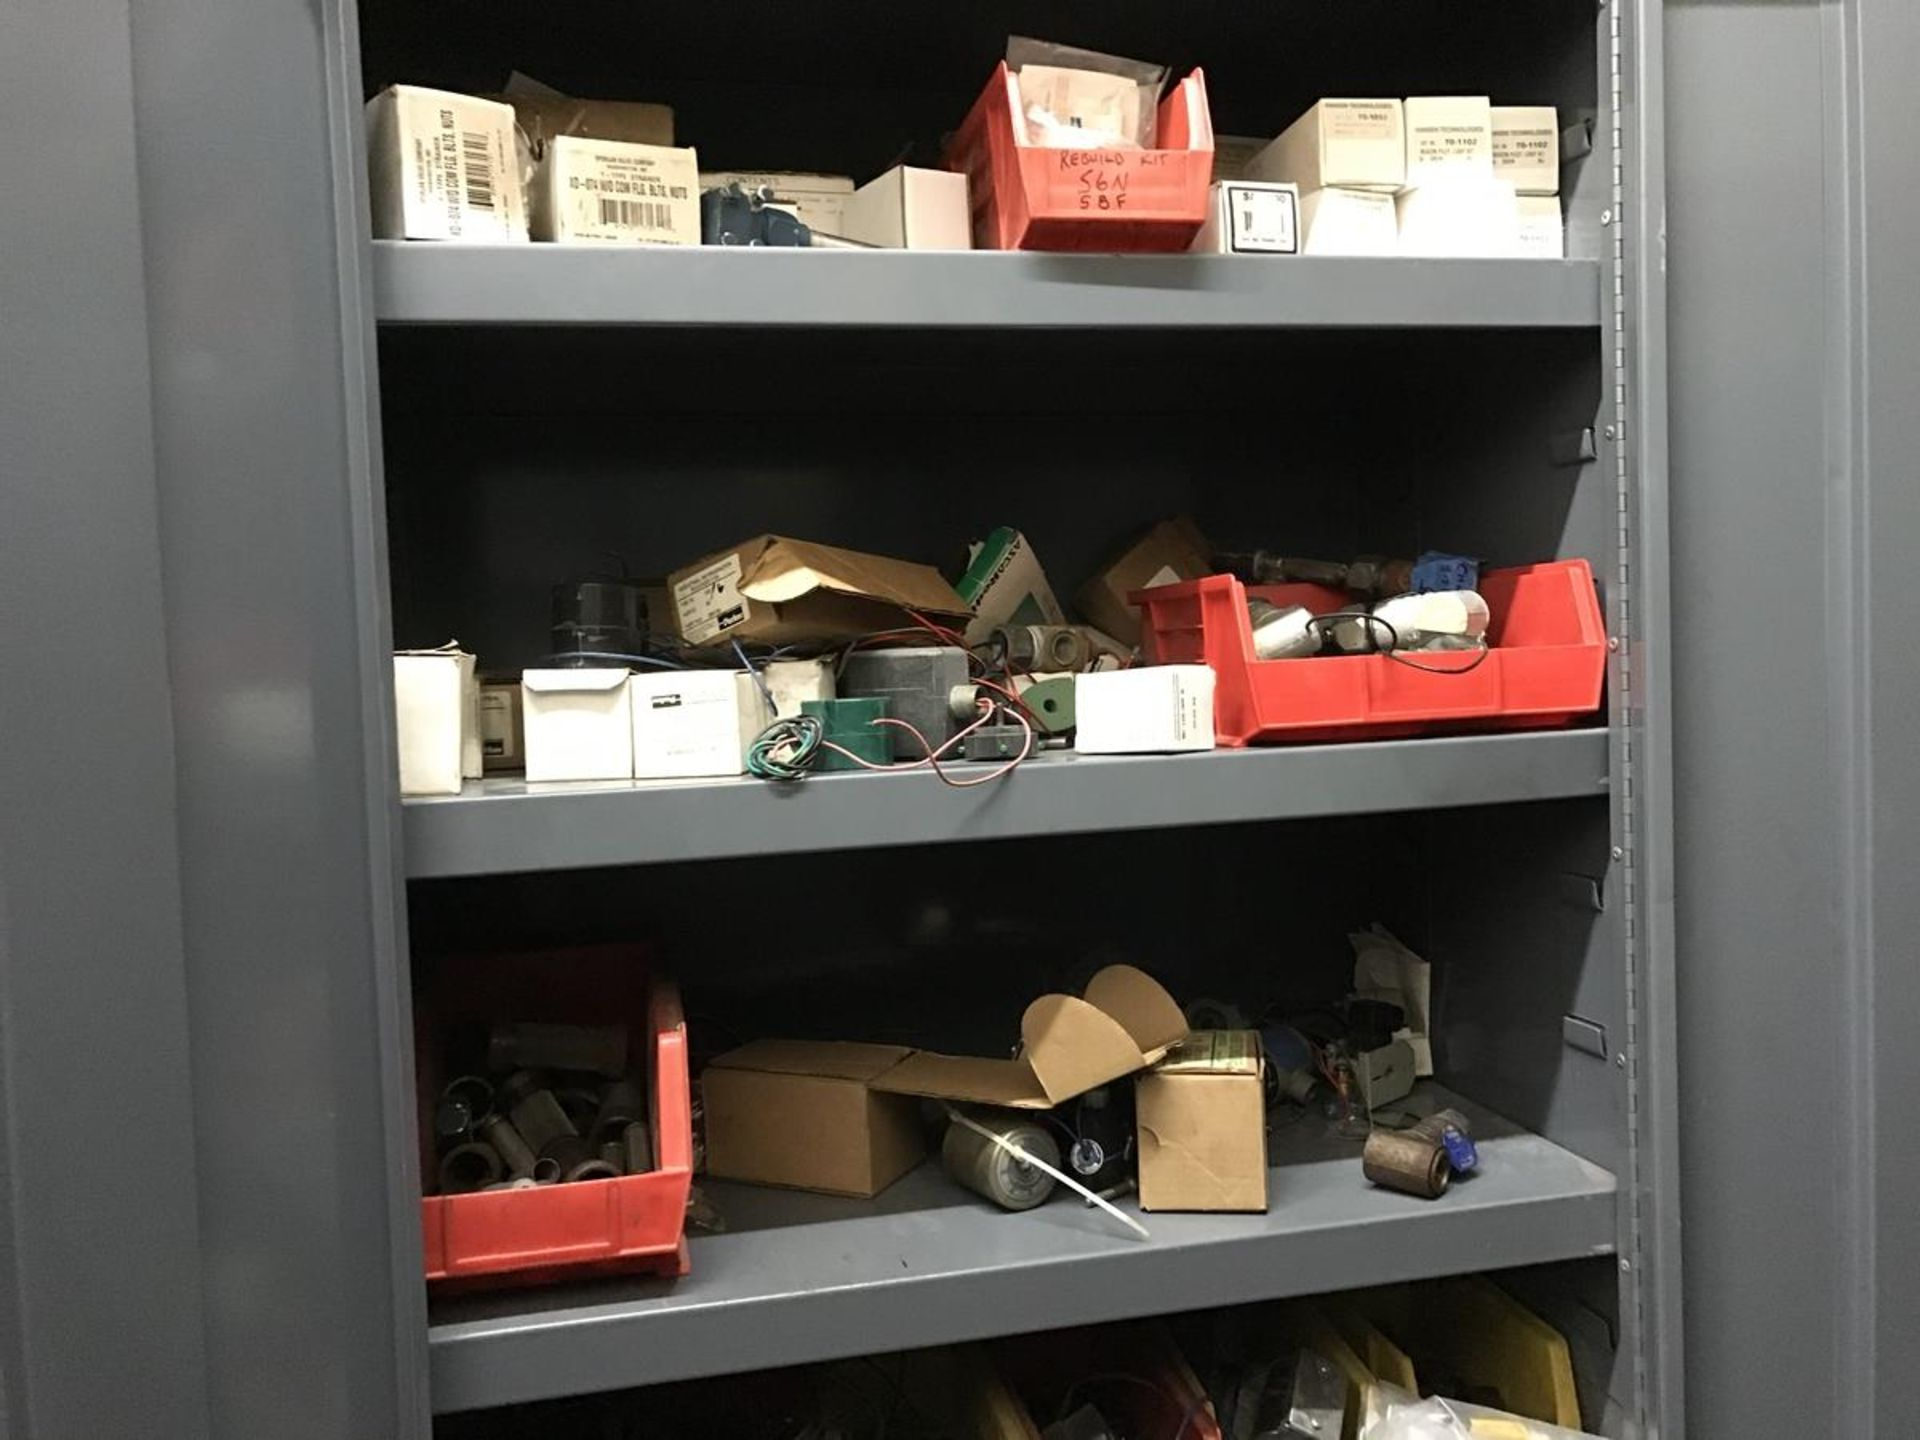 Lot 197 - Contents of Room with 10 Cabinets, Ammonia Parts, Work Bench, Cart, File Cabinets | Rig Fee: $1000